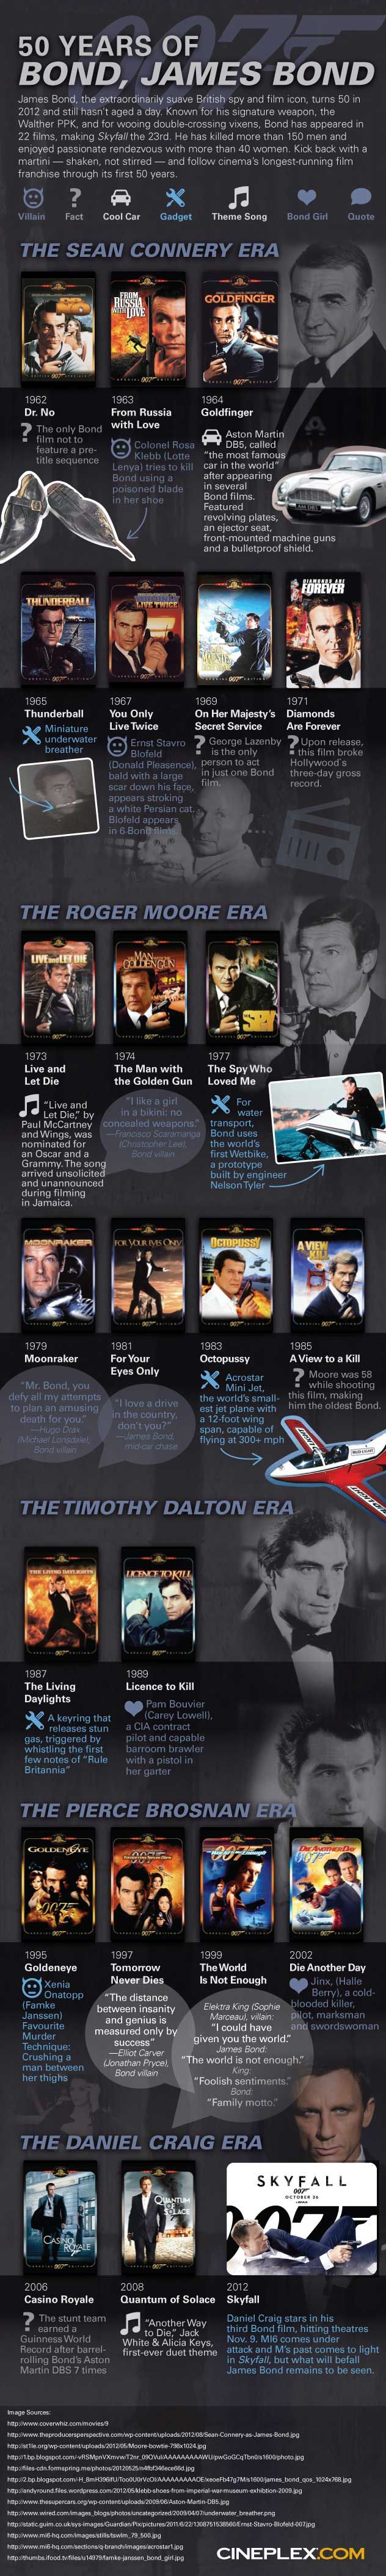 007 Bond infographic on: HISTORY of by Cineplex • ...from Bond1 Dr No 1962 to Bond24 SkyFall 2012